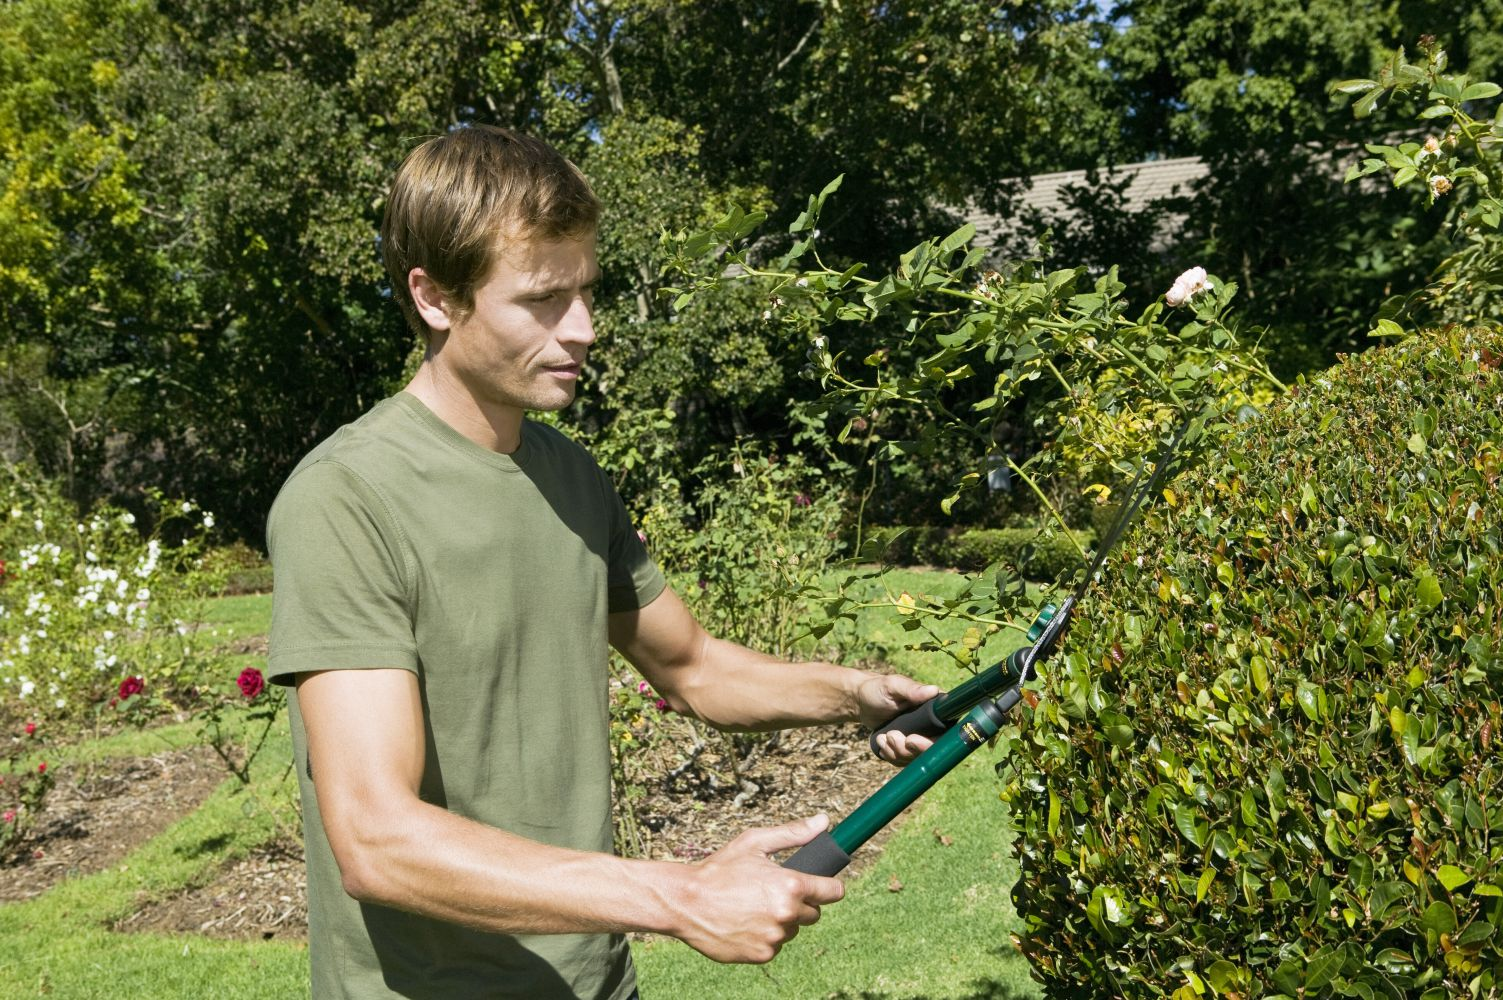 A professional landscaper at work in Warwick, NY